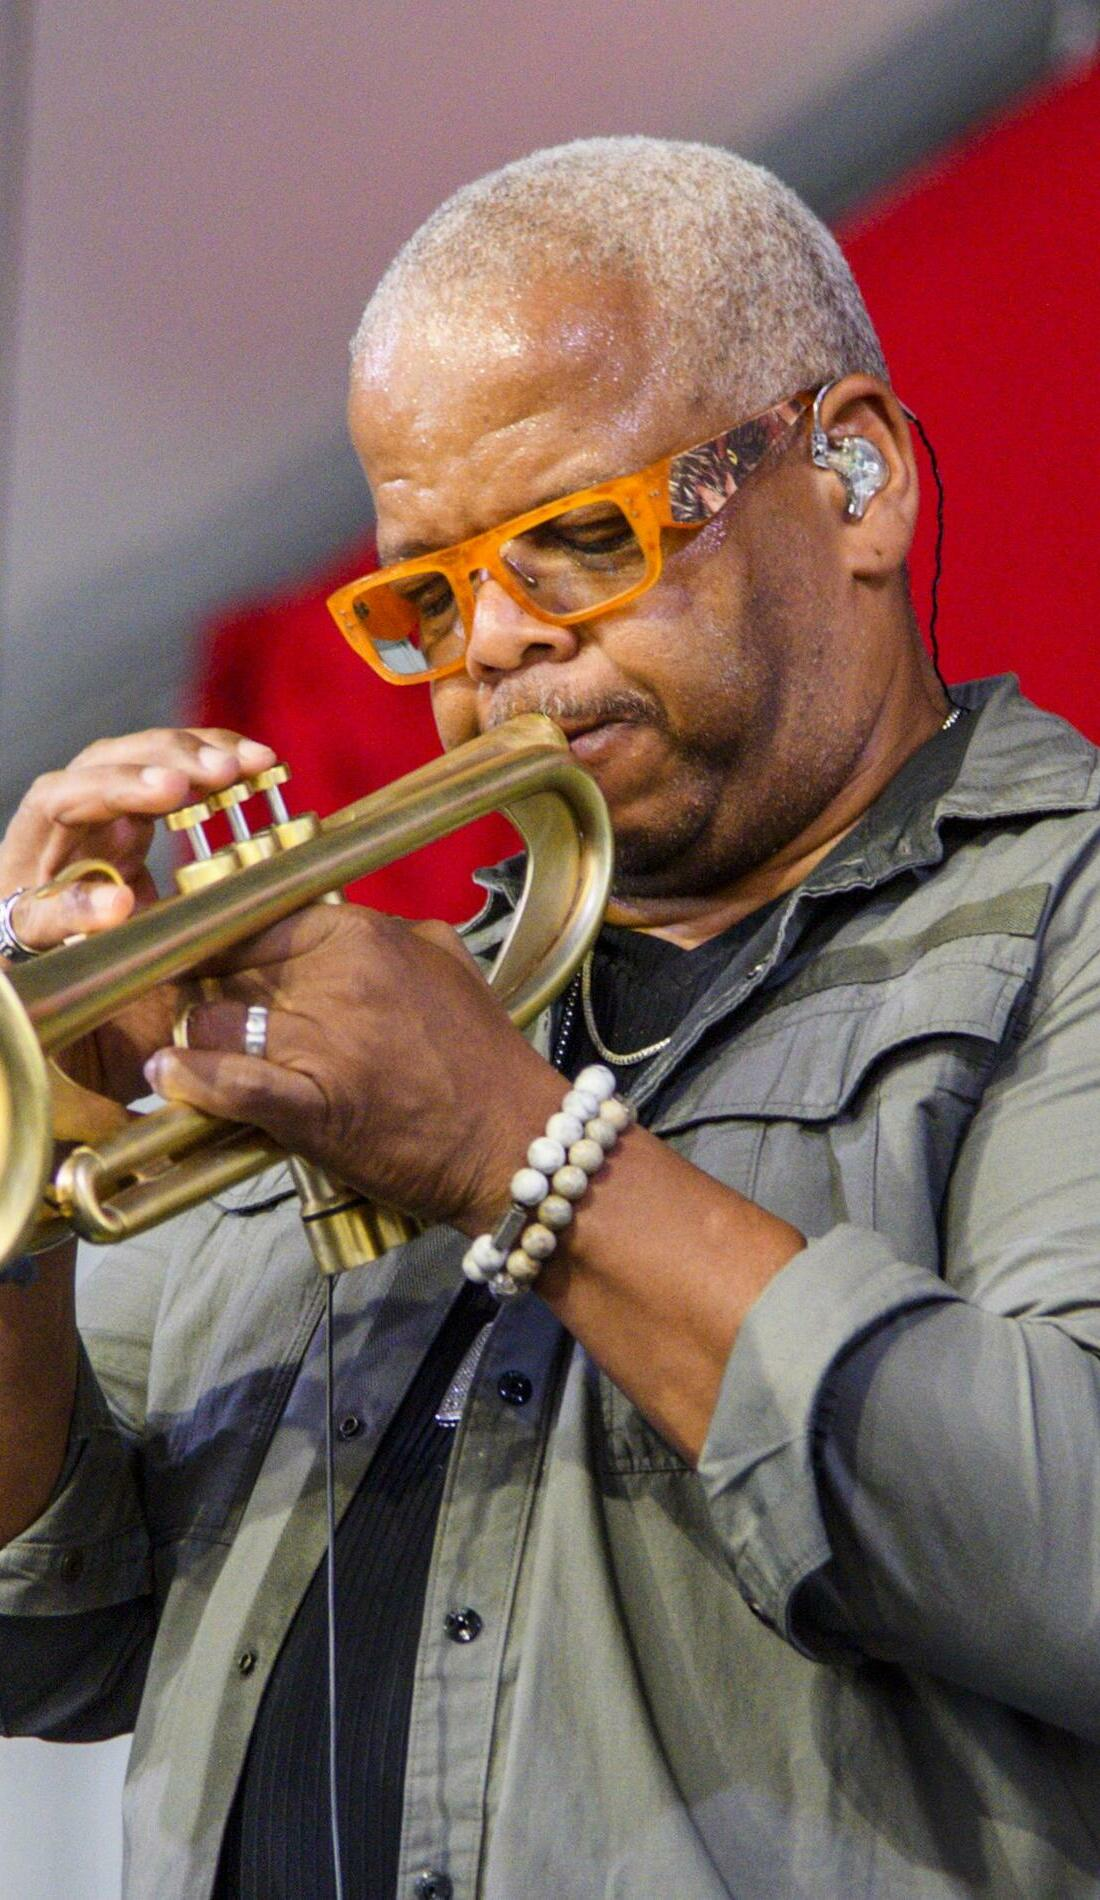 A Terence Blanchard live event